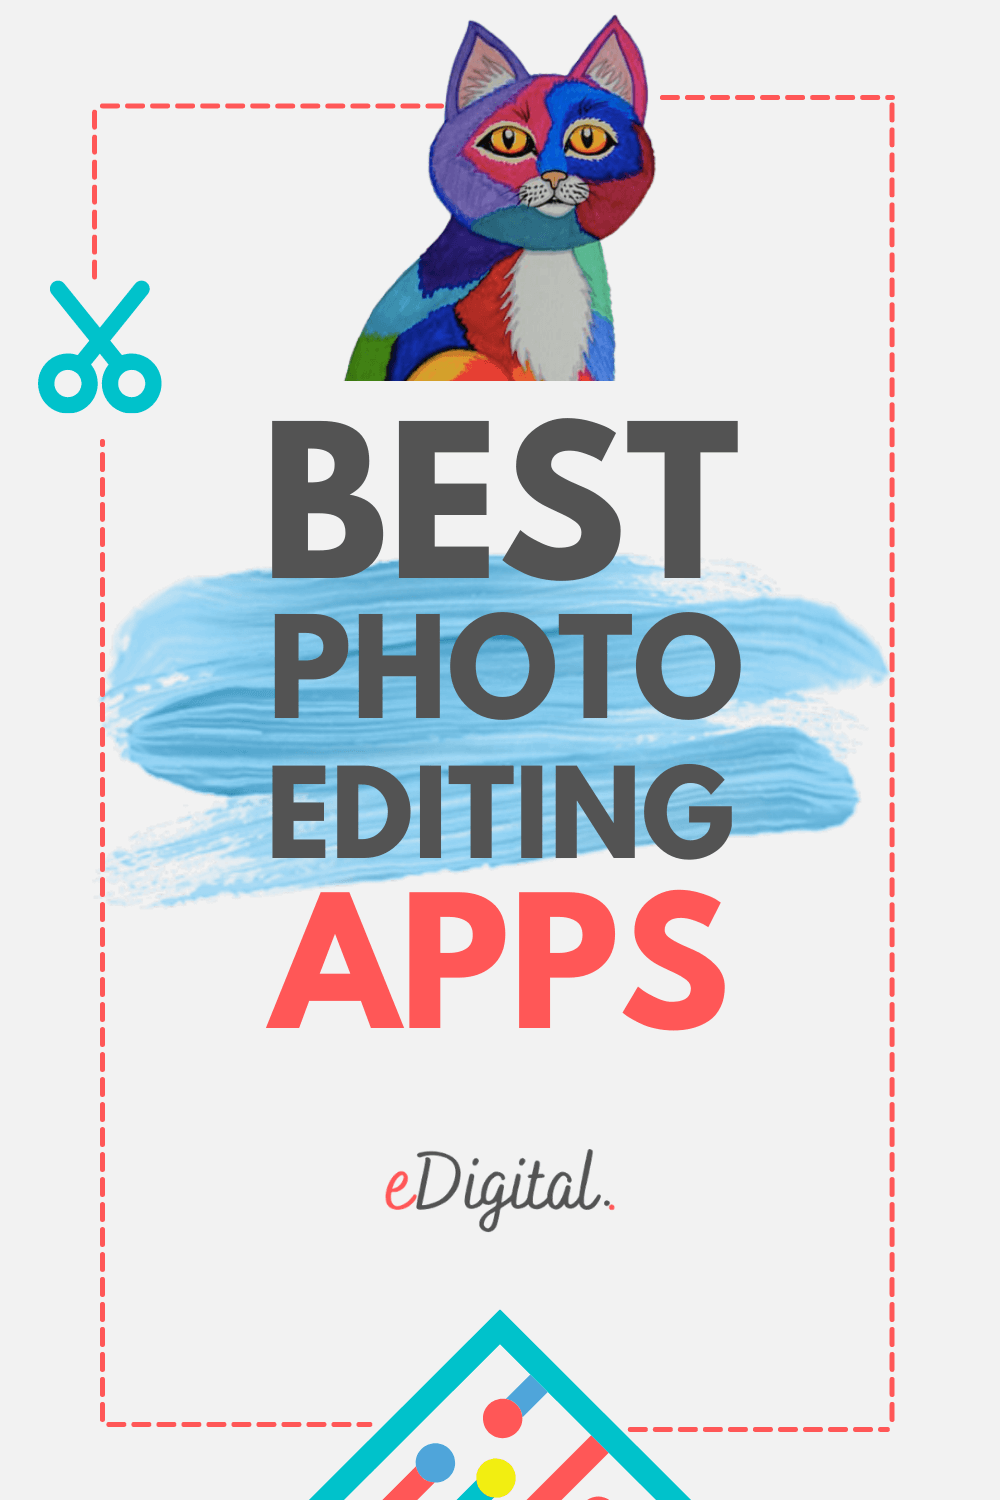 Best photo editing apps list